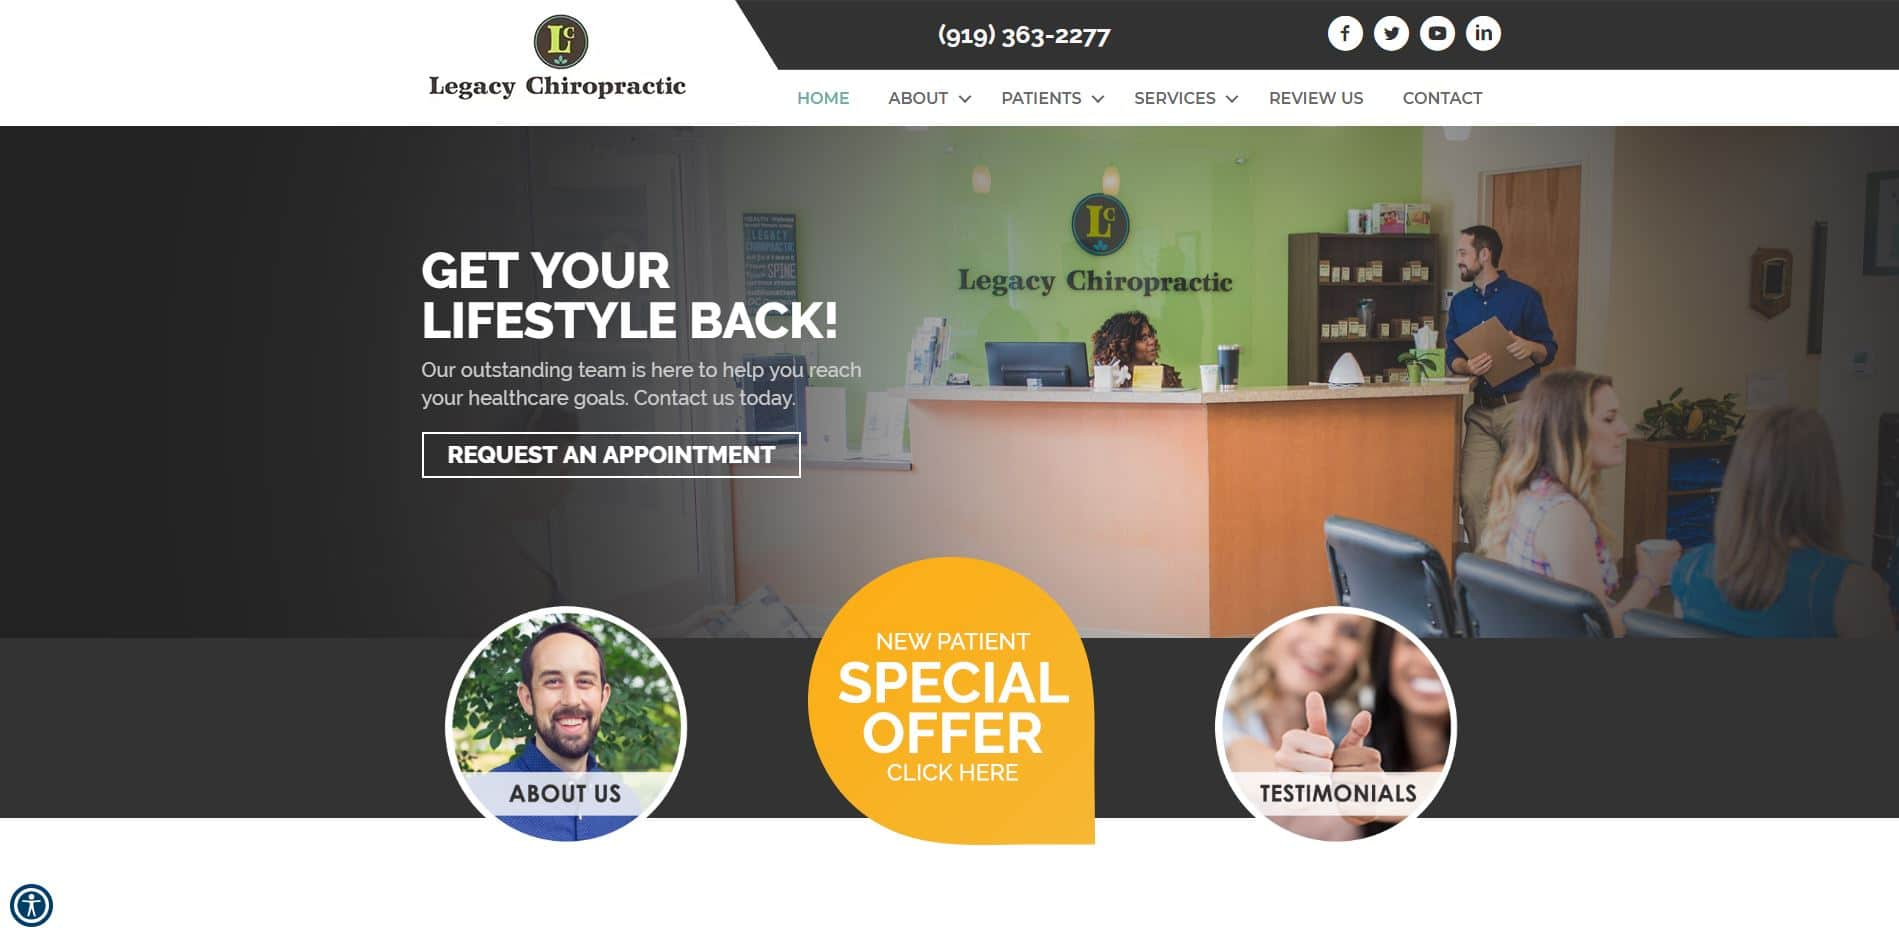 Chiropractor in Cary